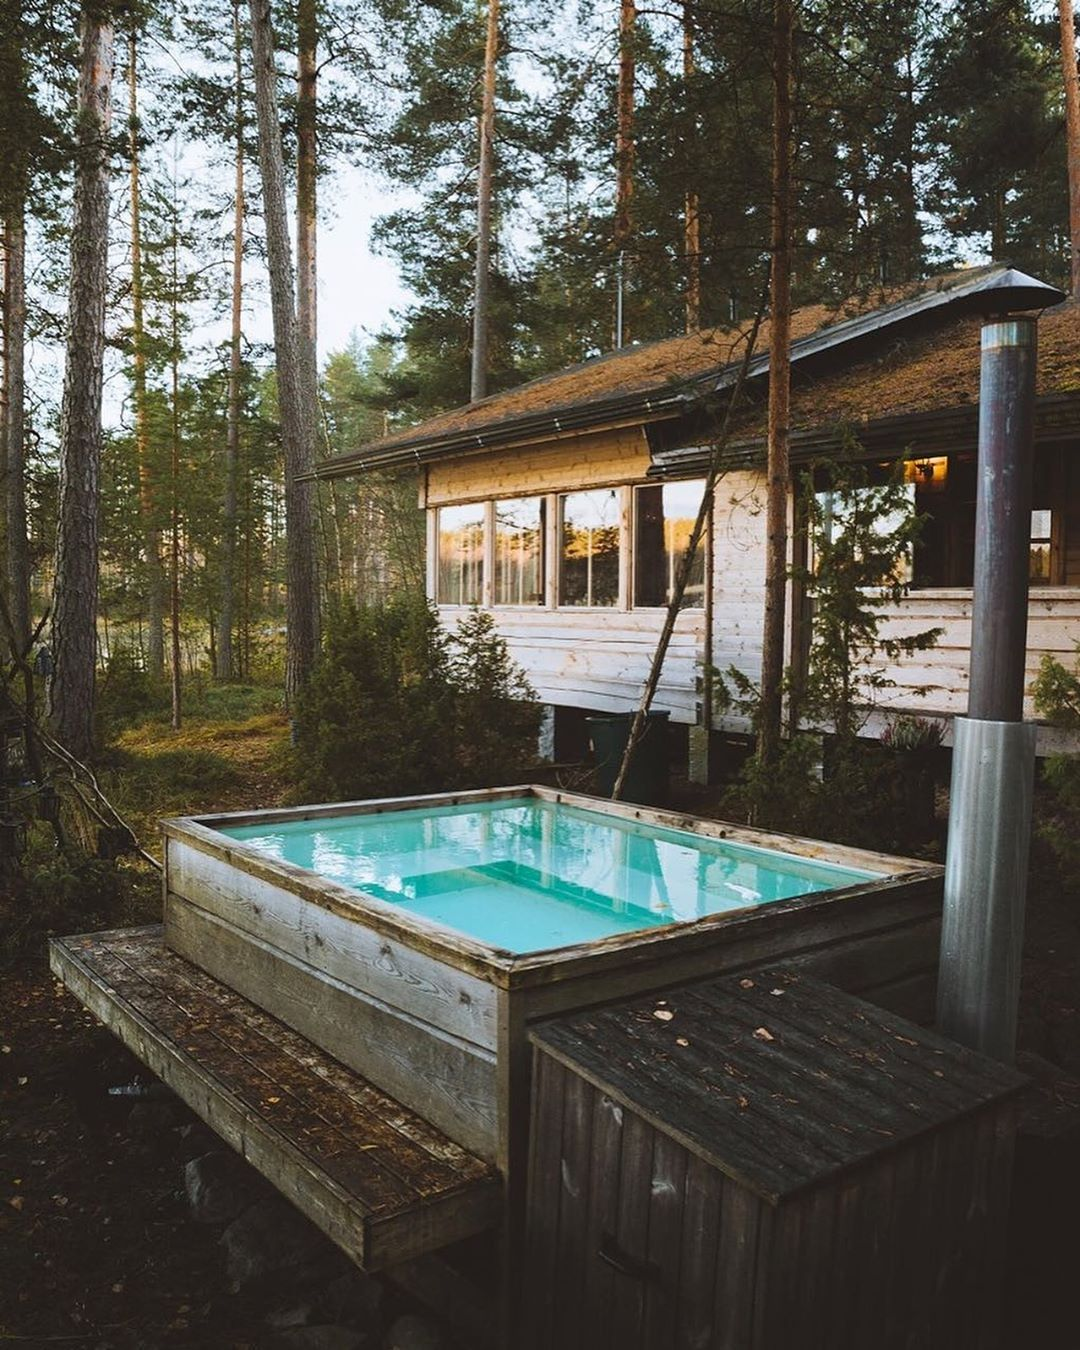 Cabin Love On Instagram Forest Bathing Finland Cabinlove Finland Joonaslinkola Rustic Hot Tubs House Viewing Hot Tub Outdoor